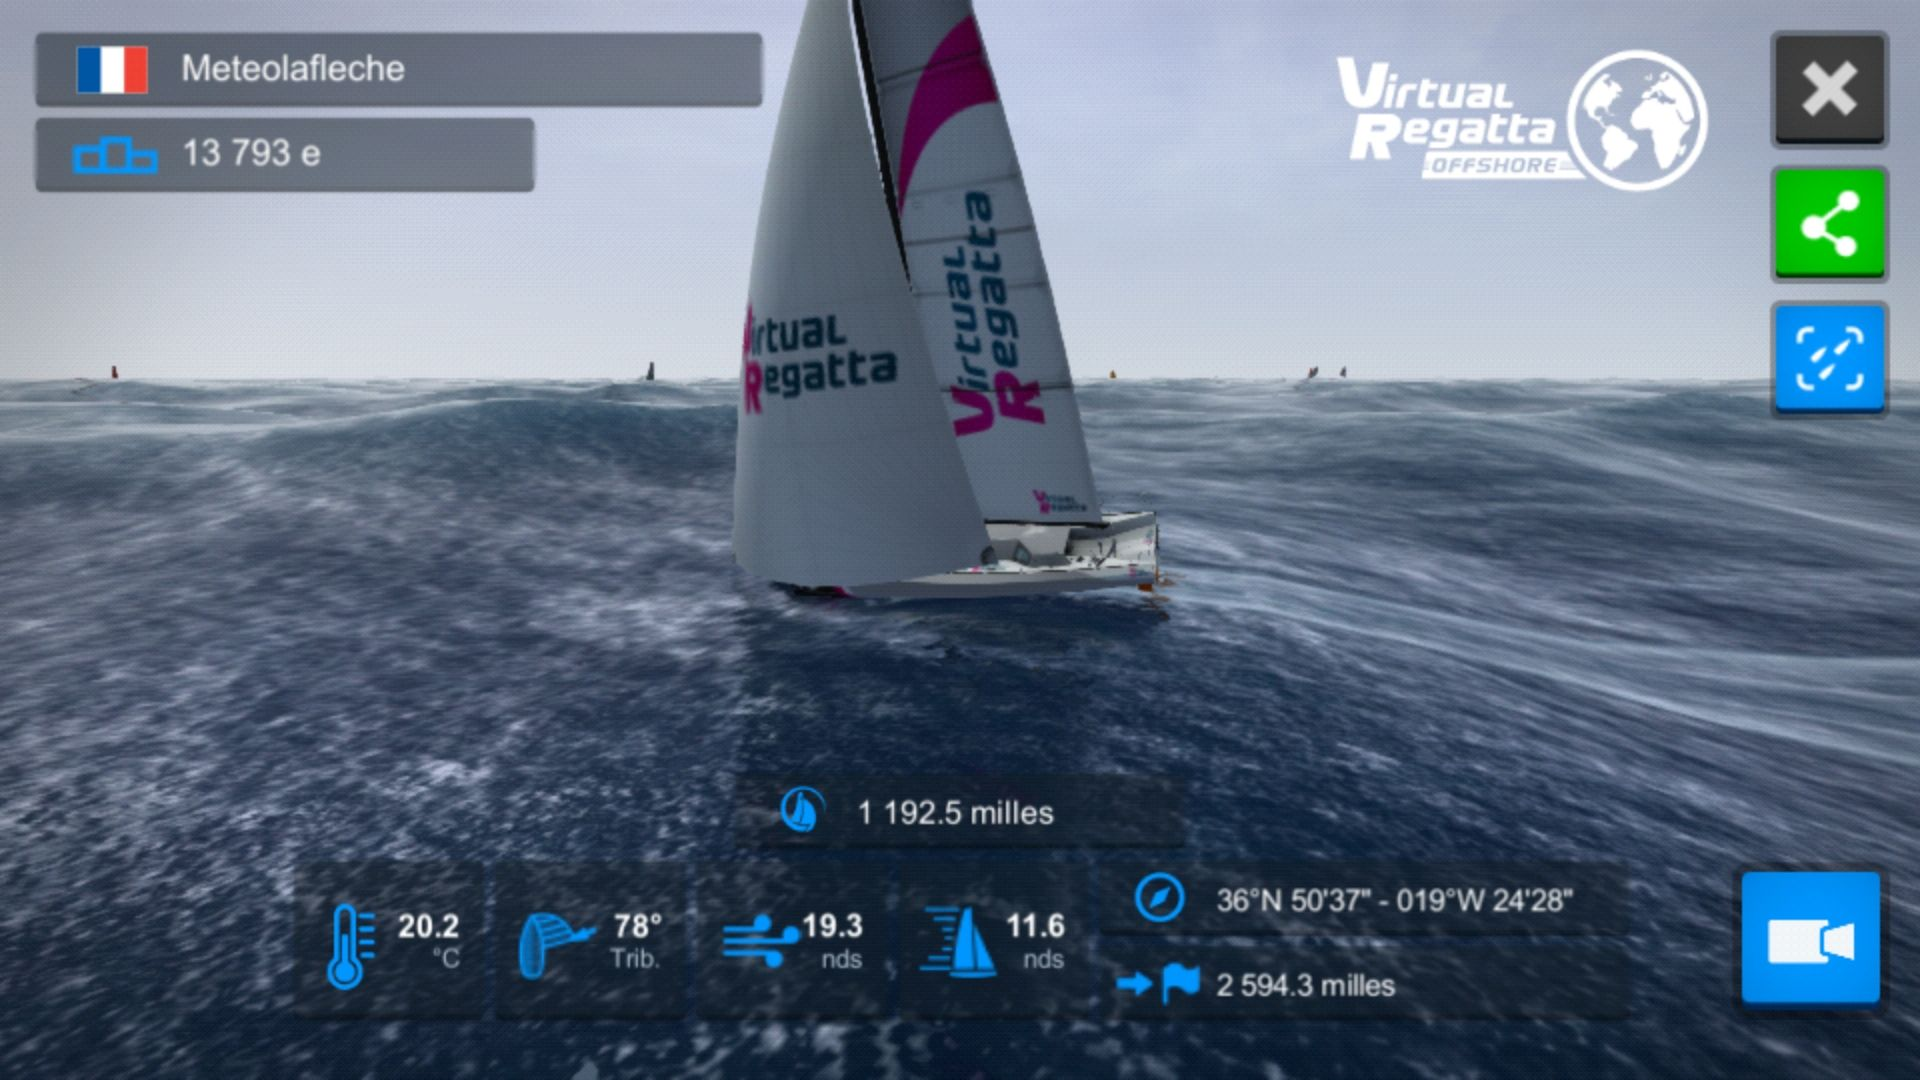 Participation Route du Rhum Virtual Regatta 2018